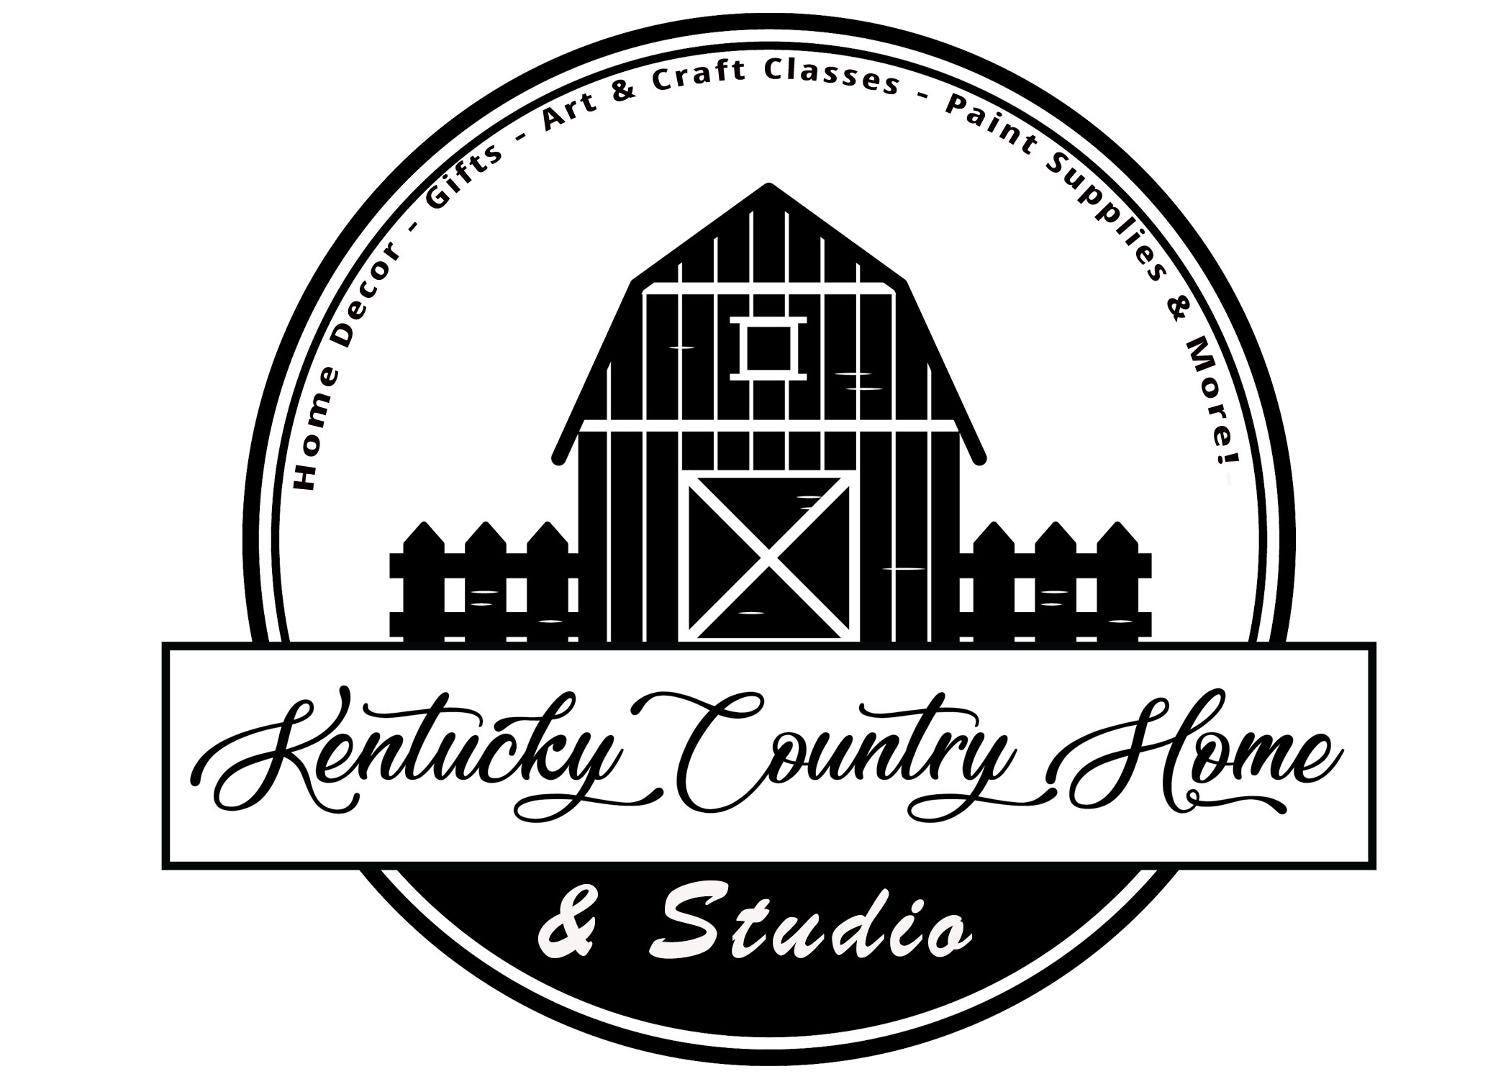 Kentucky Country Home & Studio